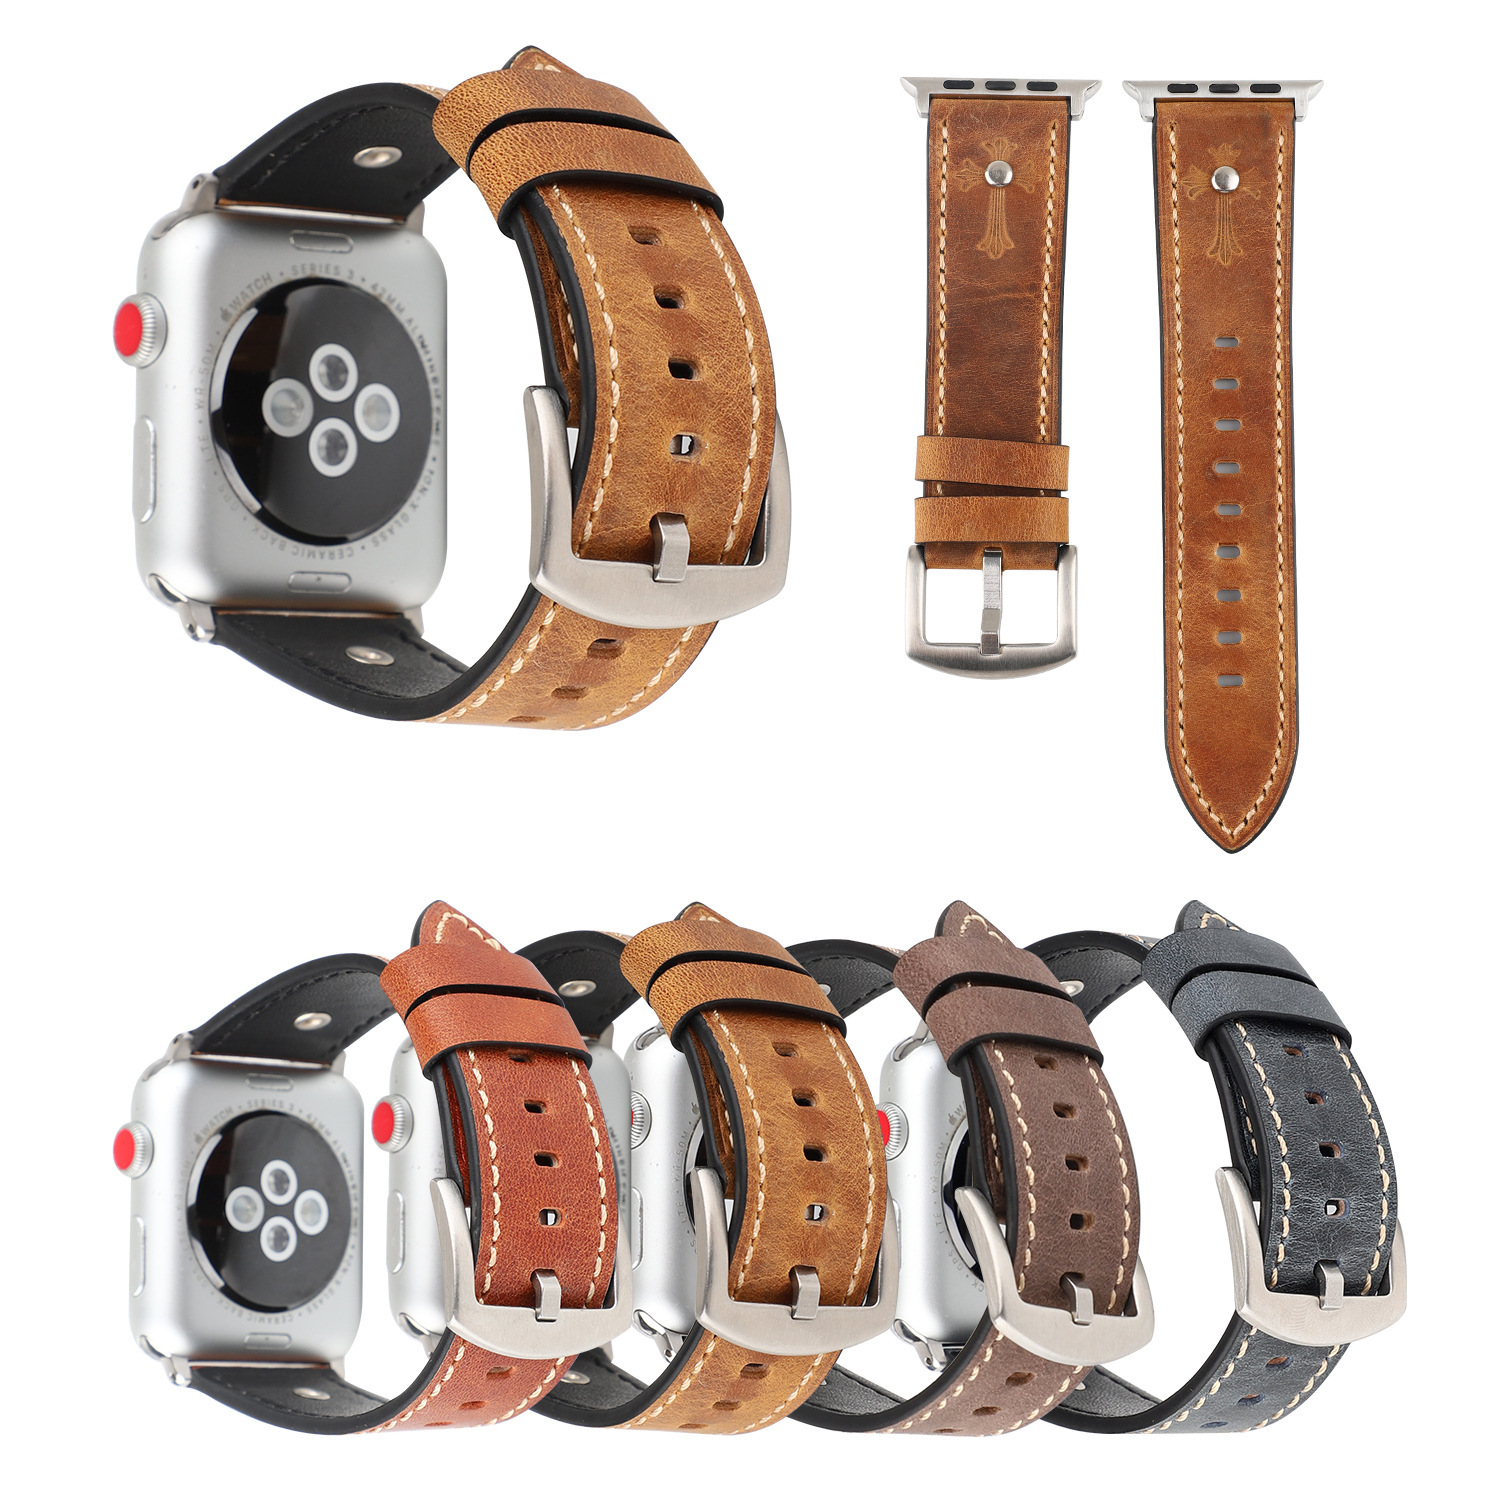 Applicable APPLE Watch4 Leather Watch Strap Apple Watch Grams Luo Xing New Style Iwatch4 Leather Watch Strap